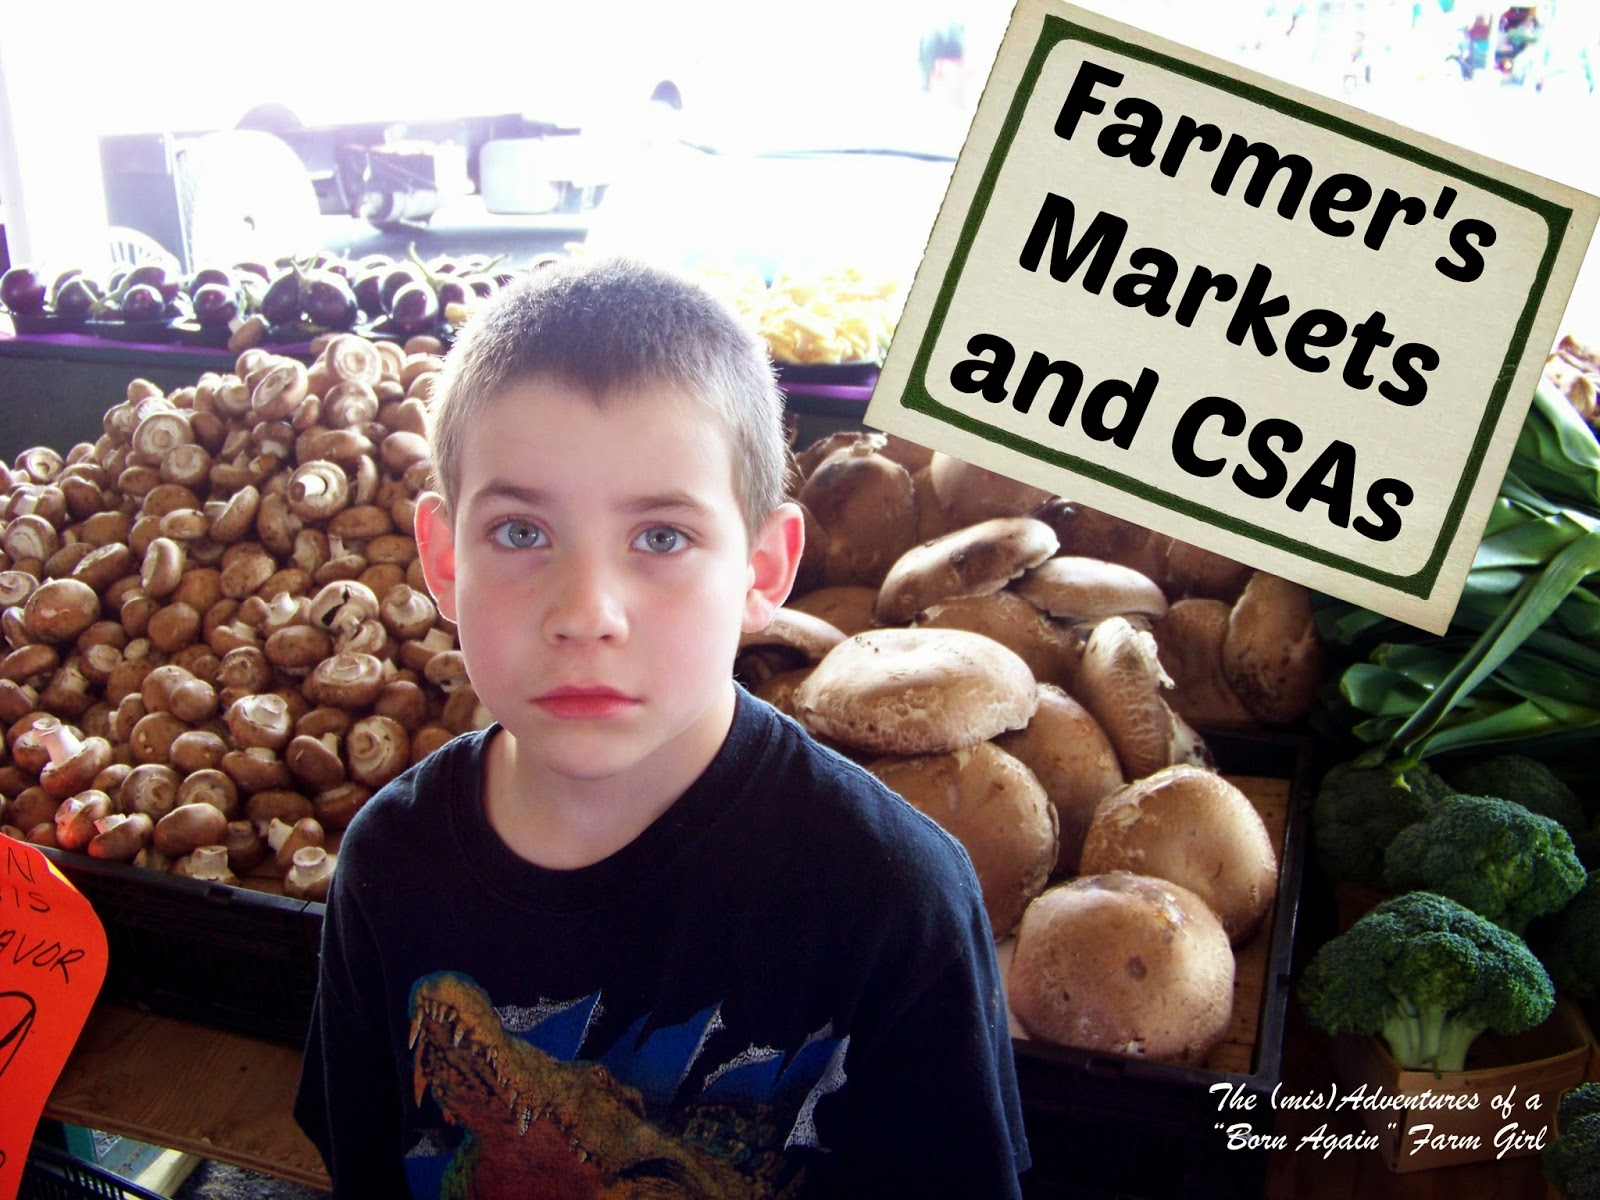 Farmer's Markets and CSAs